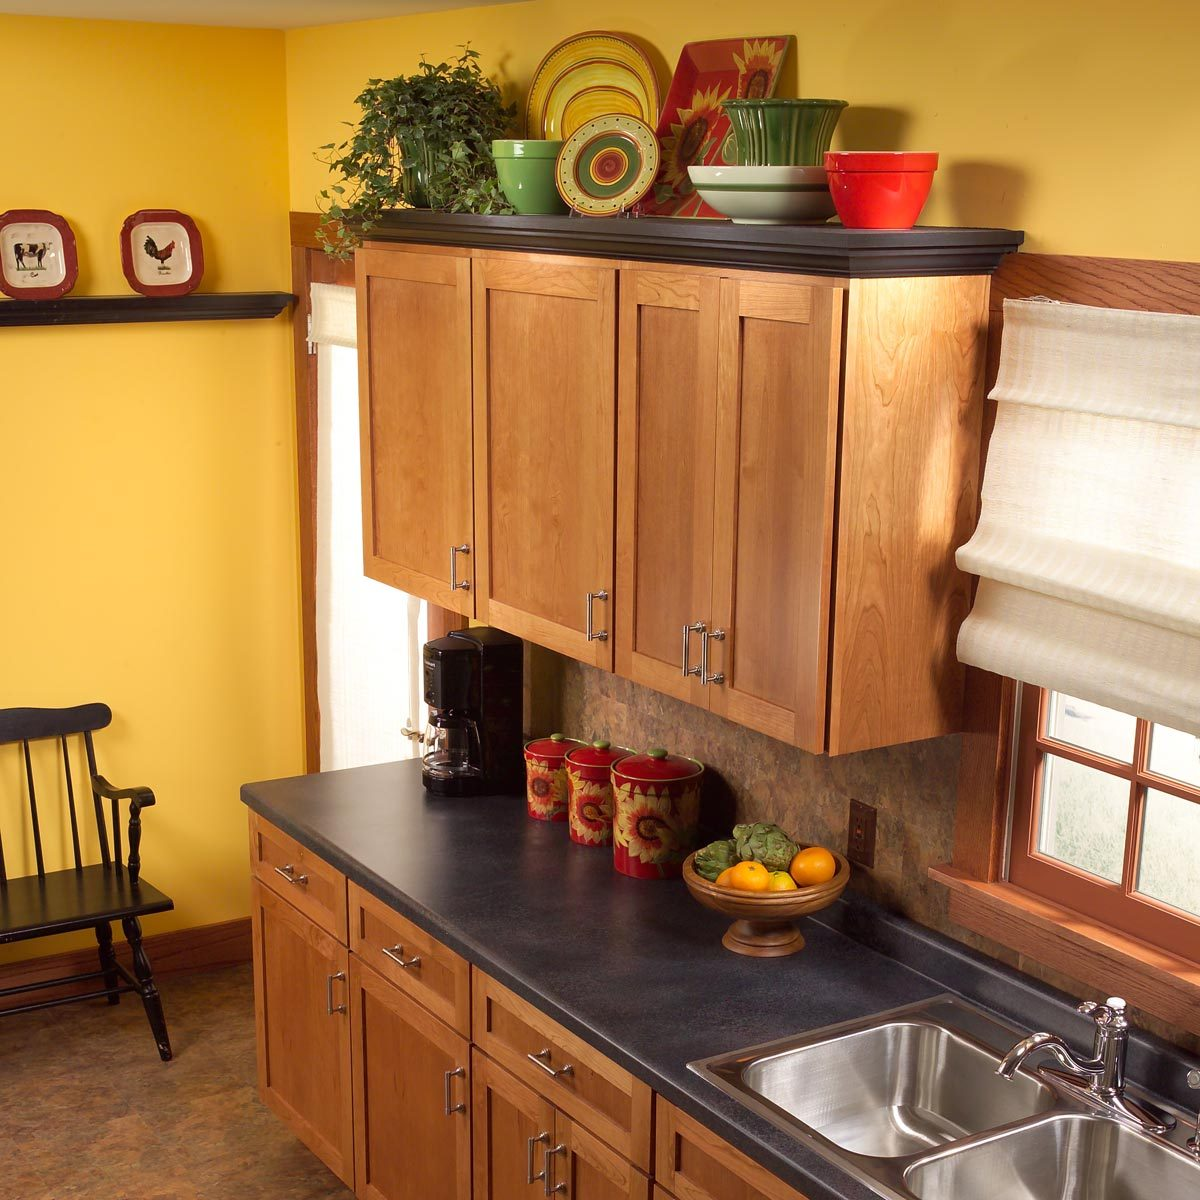 Modular Kitchen Upper Cabinets How To Add Shelves Above Kitchen Cabinets Family Handyman The